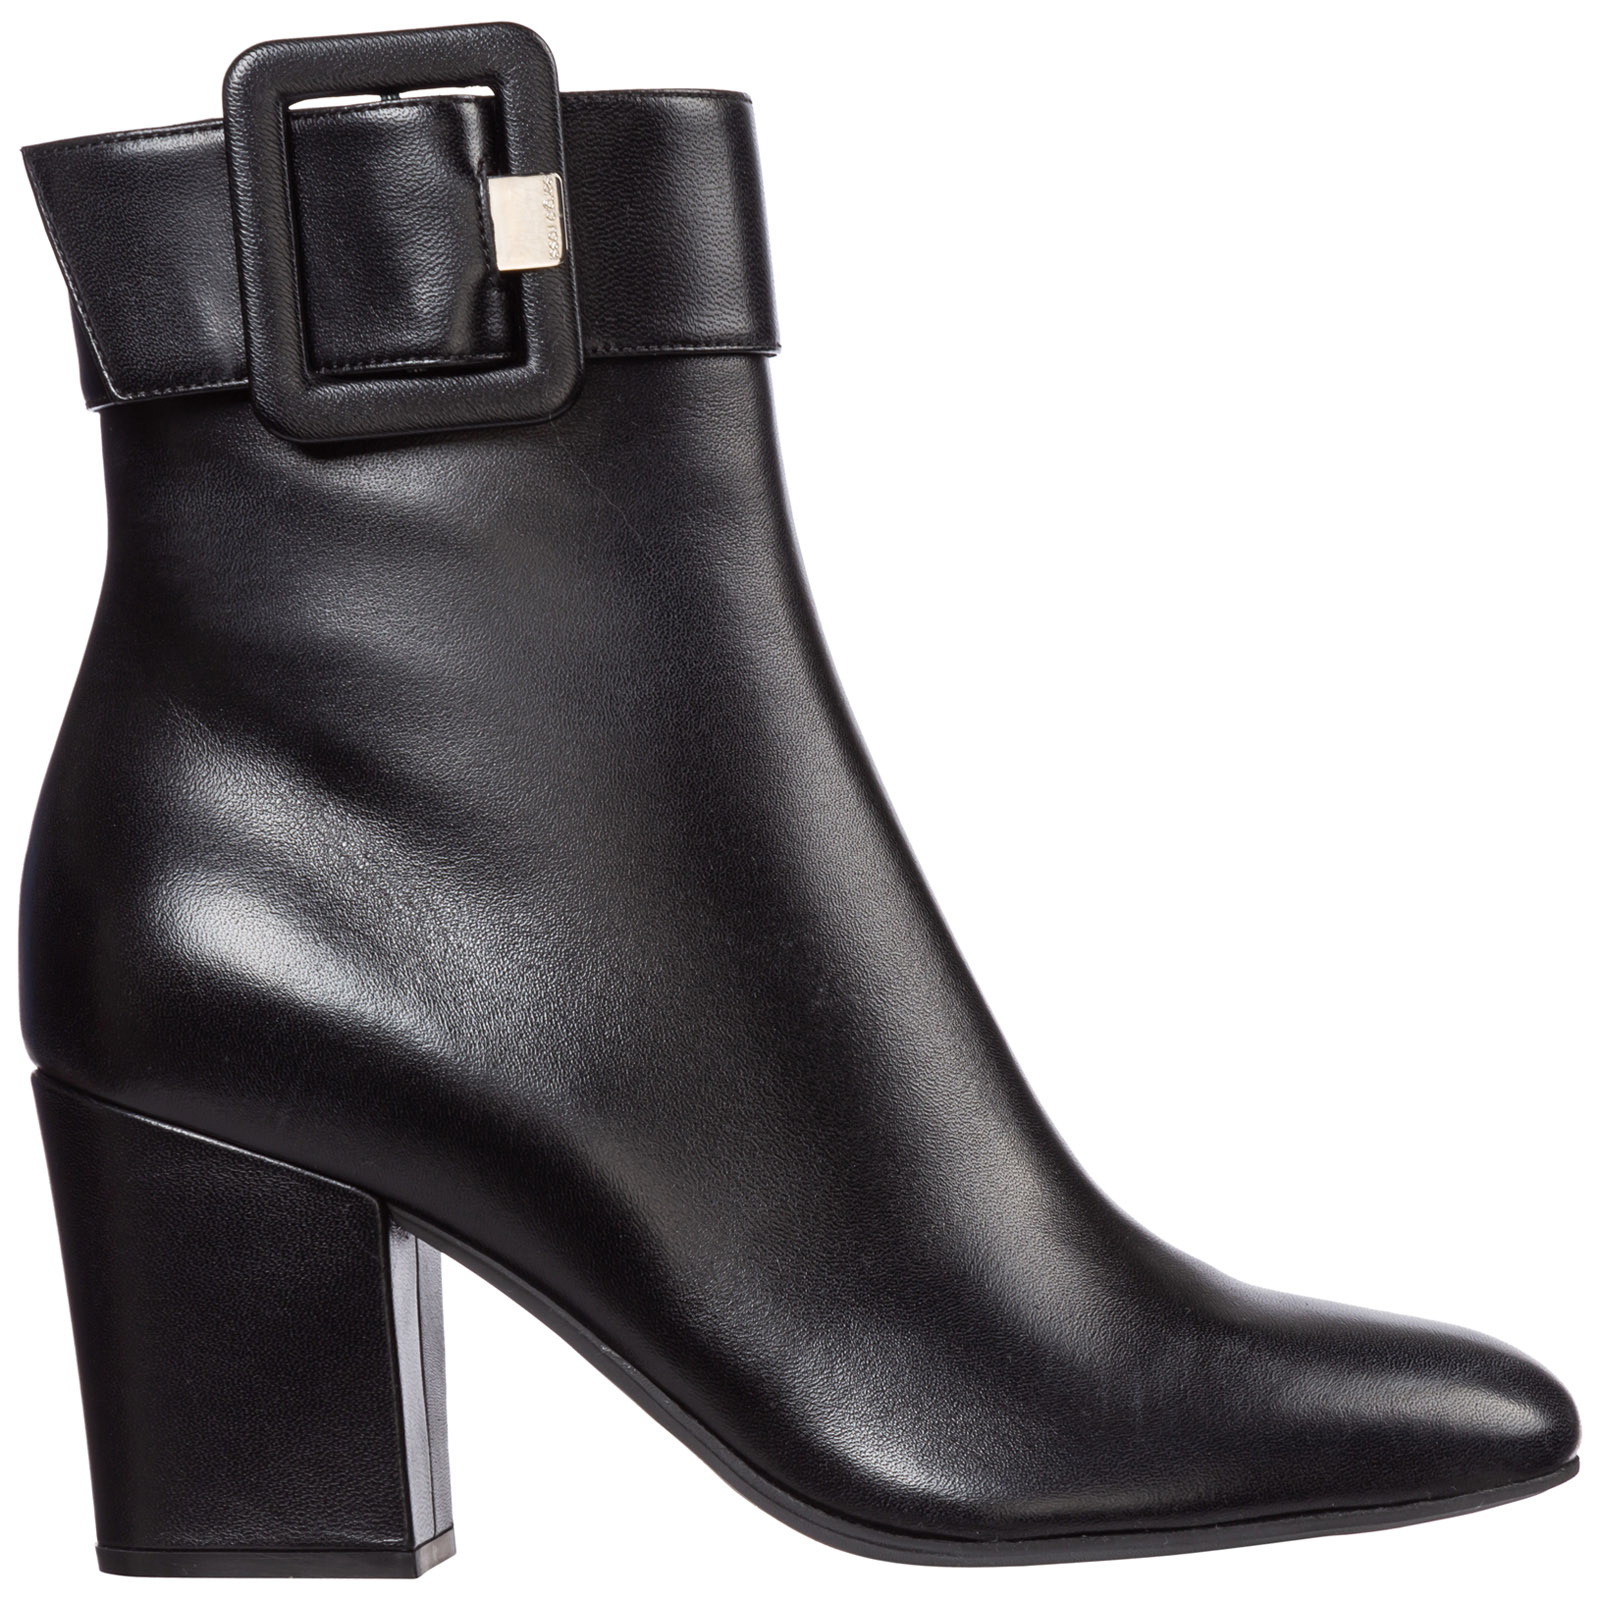 Sergio Rossi Boots WOMEN'S LEATHER HEEL ANKLE BOOTS BOOTIES SR MIA